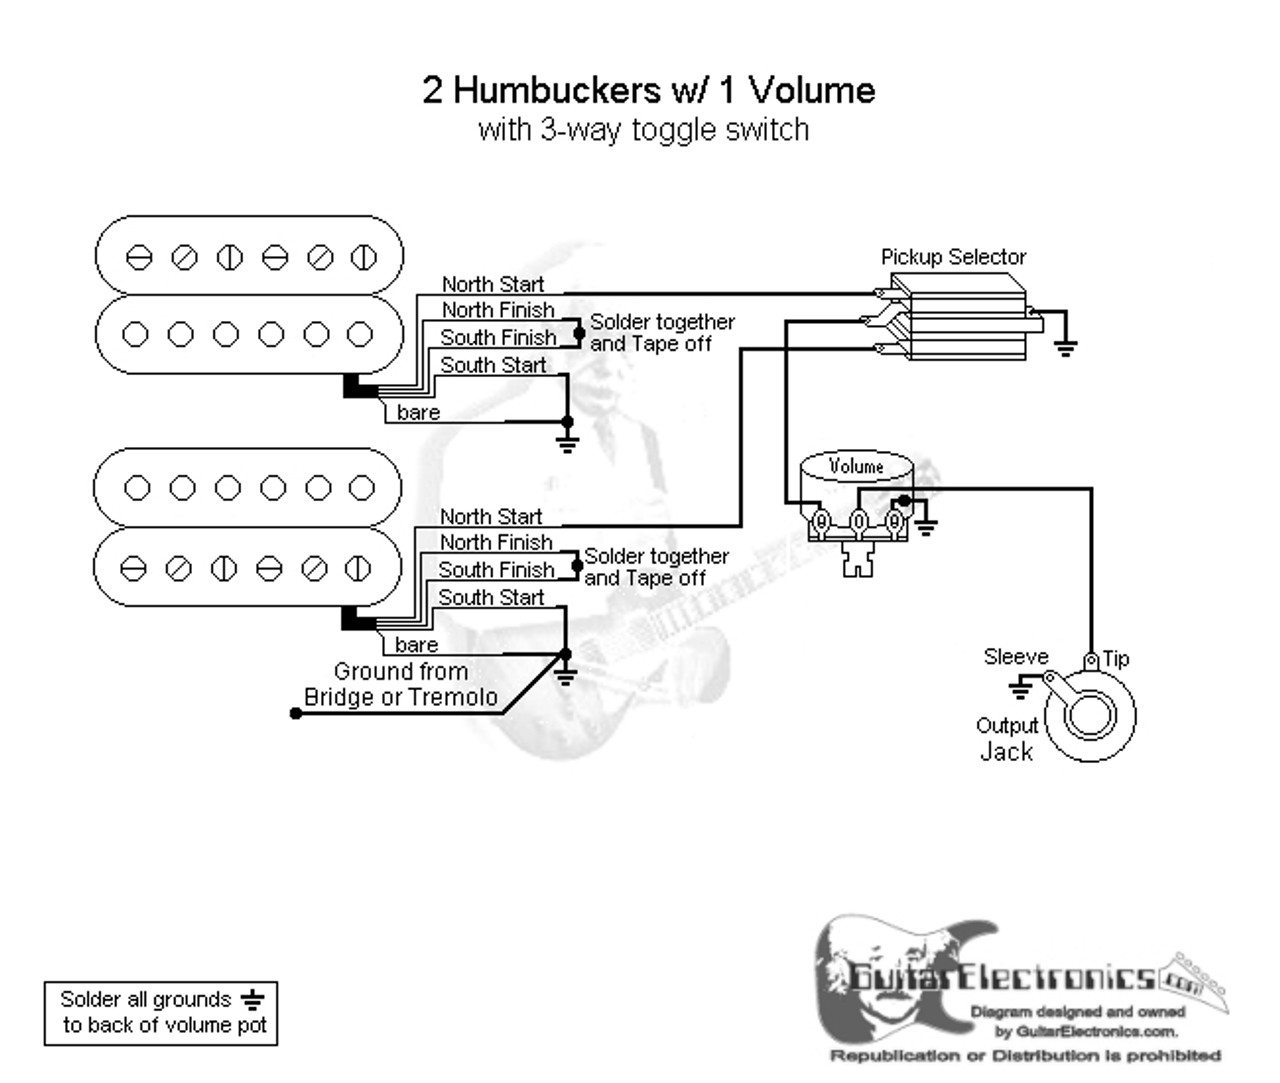 guitar wiring diagrams 2 humbucker wiring diagrams sign 2 humbuckers 1 volume 1 tone 3 way switch coil split wiring schematic gibson 2 volume 1 tone